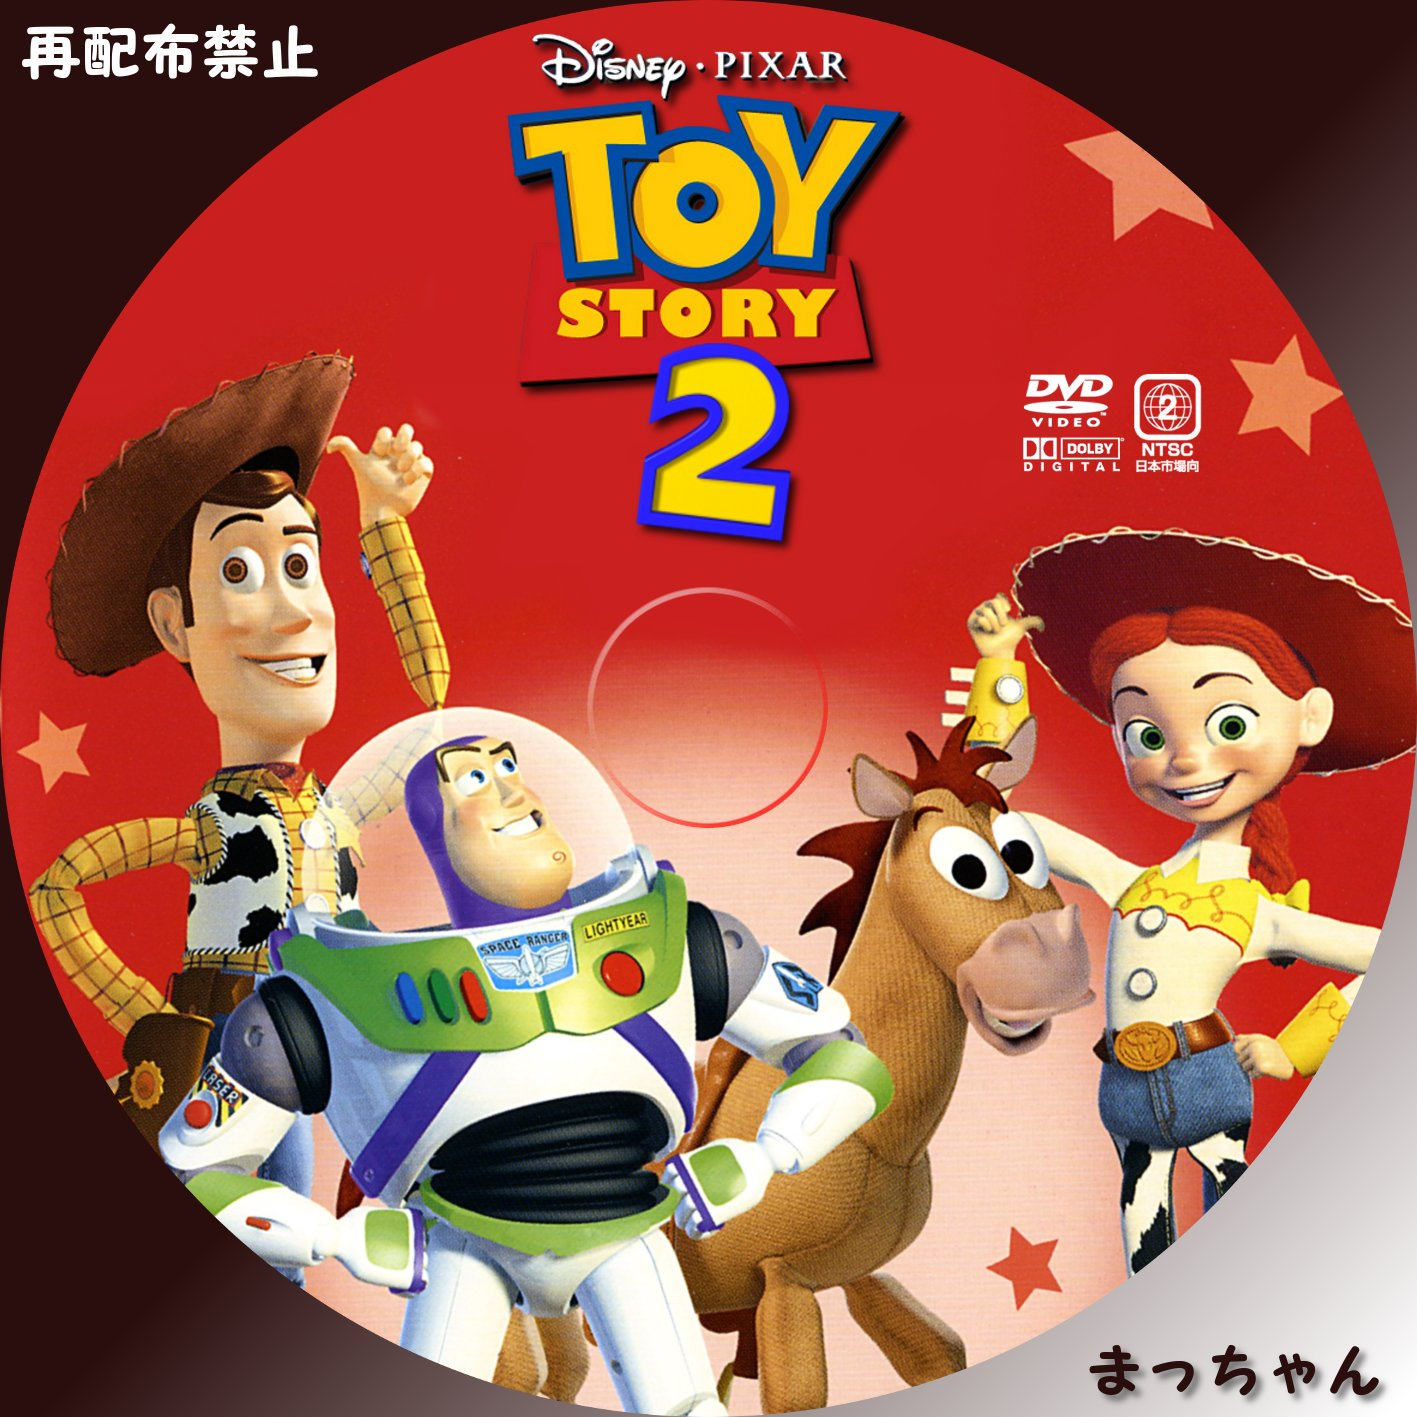 from David gay toy story 2